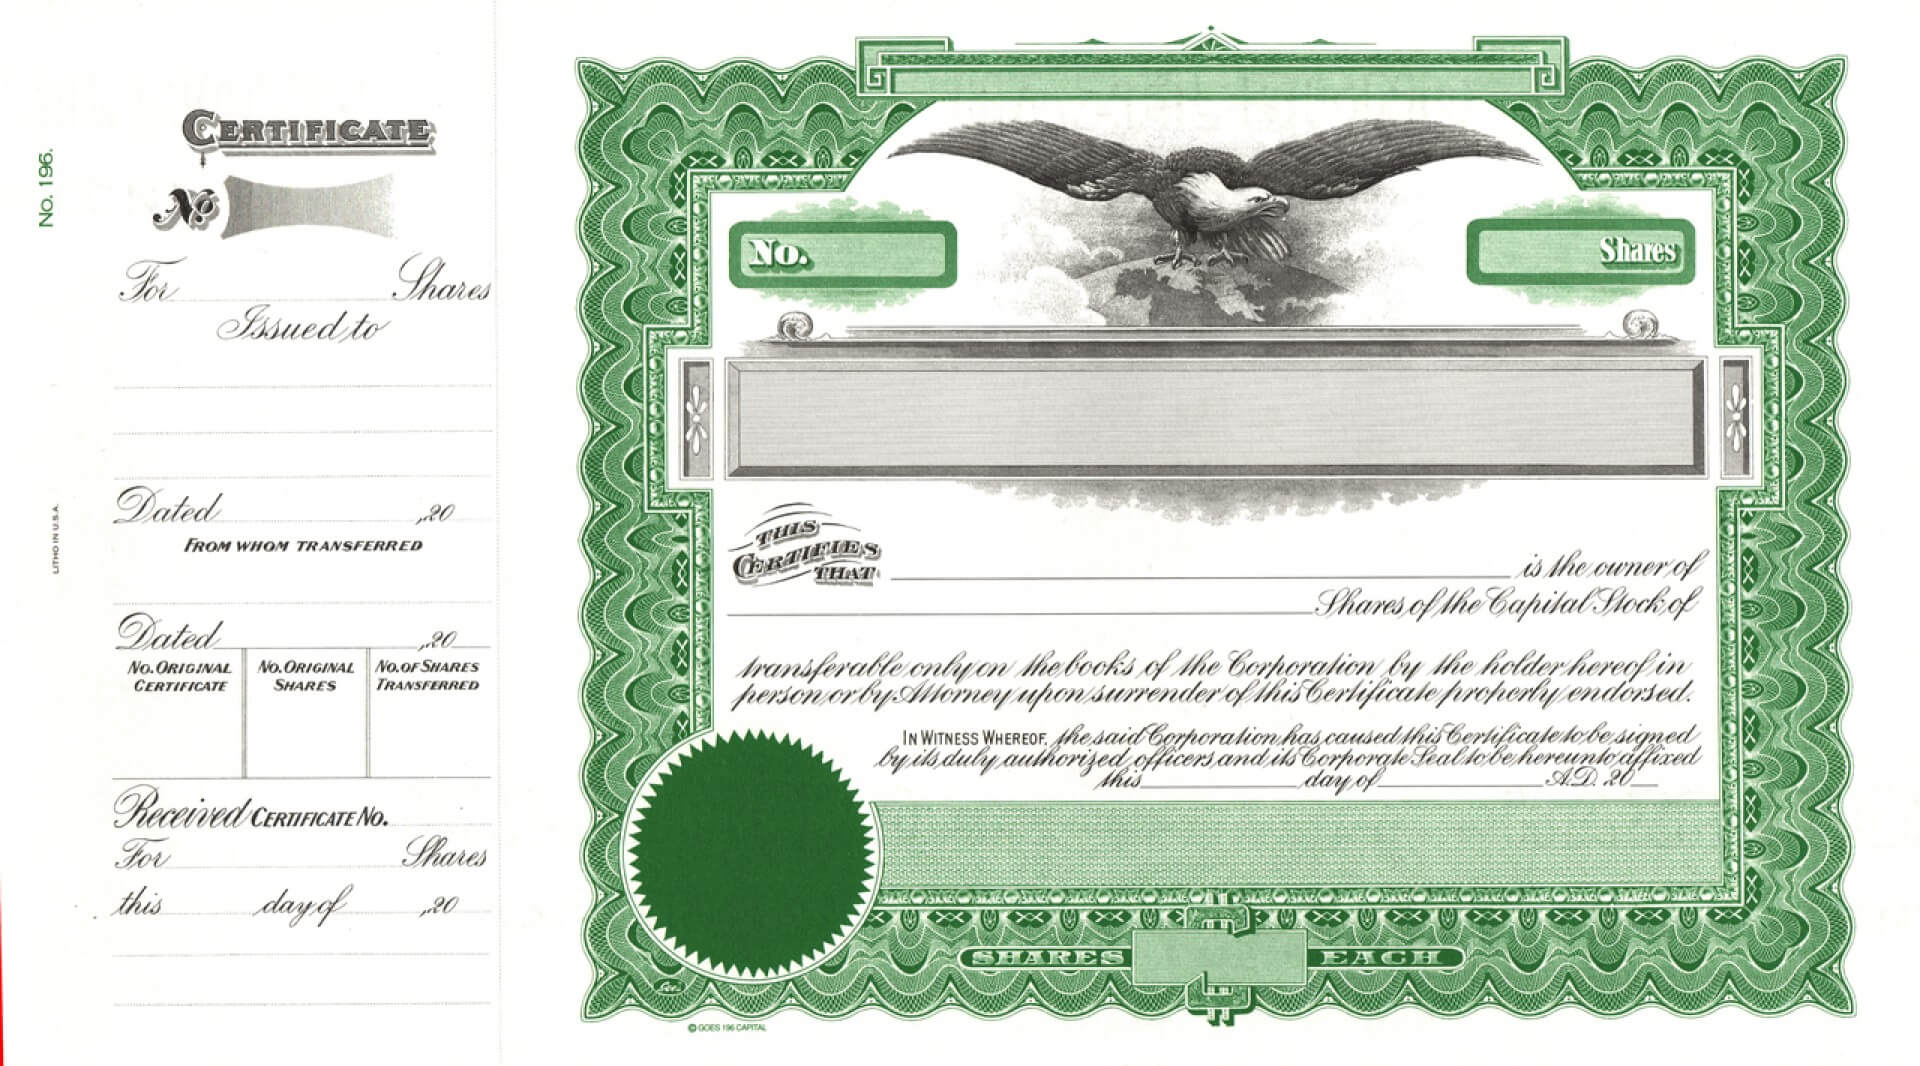 014 Free Stock Certificate Template Ideas Microsoft Word Pertaining To Free Stock Certificate Template Download